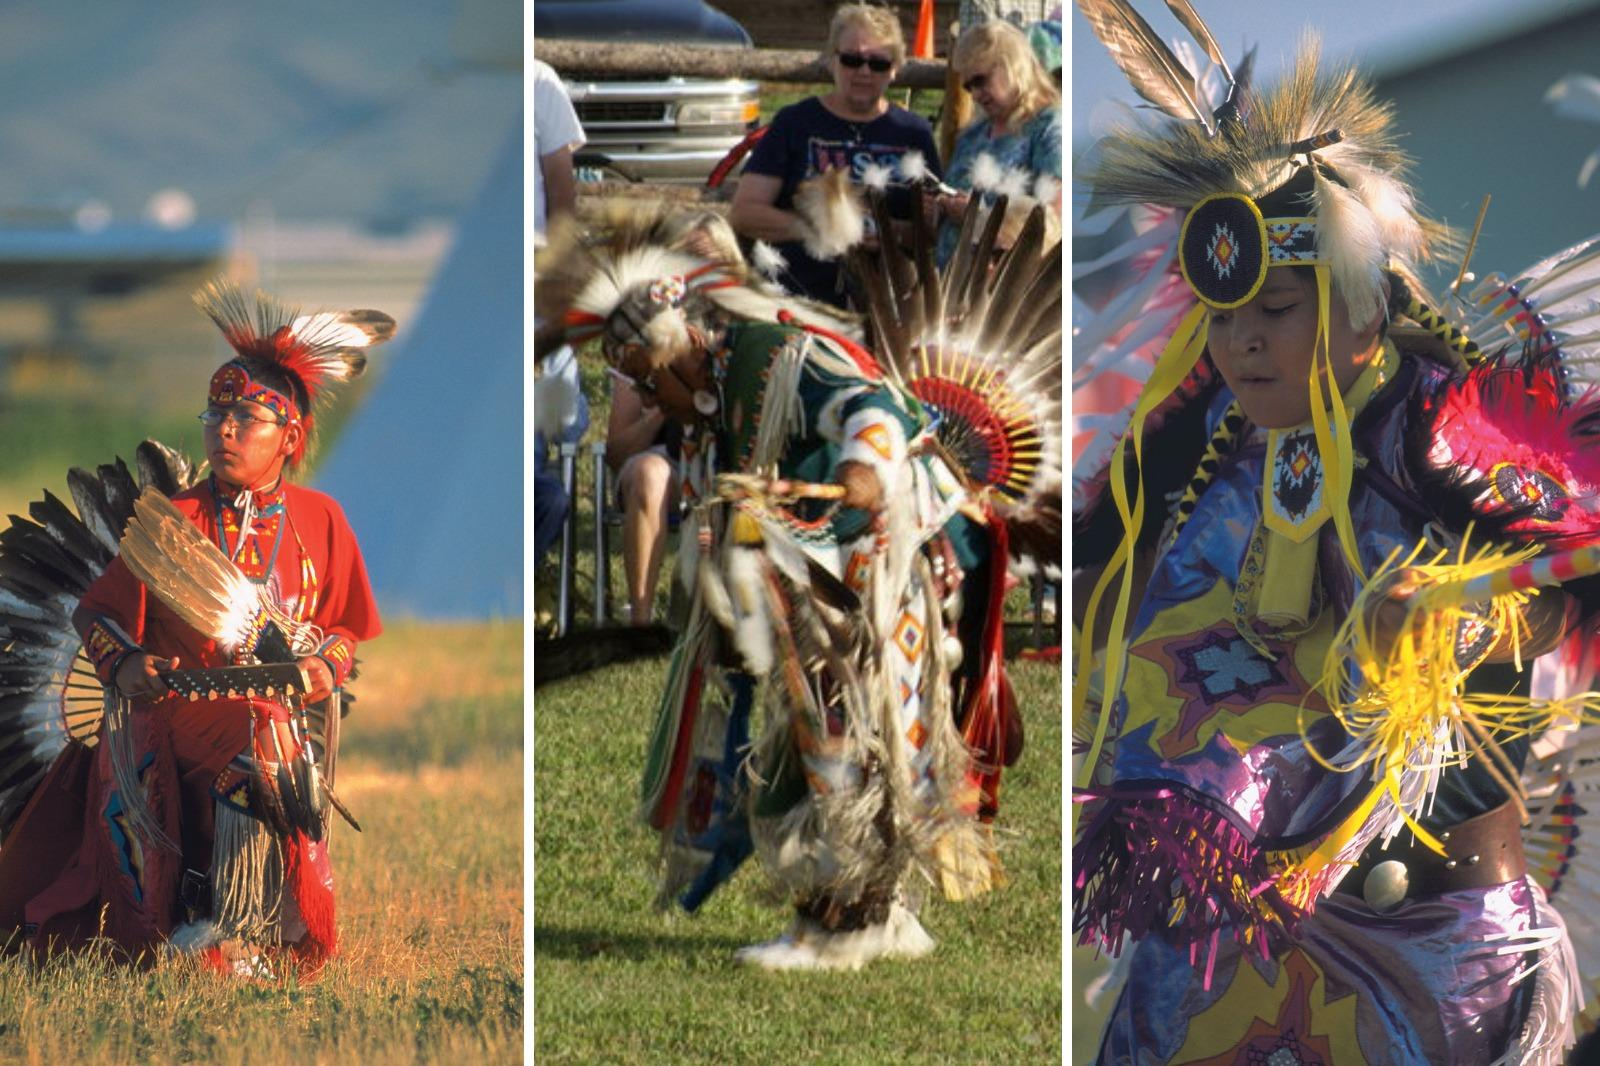 Native American dance exhibitions are one of the best Wyoming cultural experiences